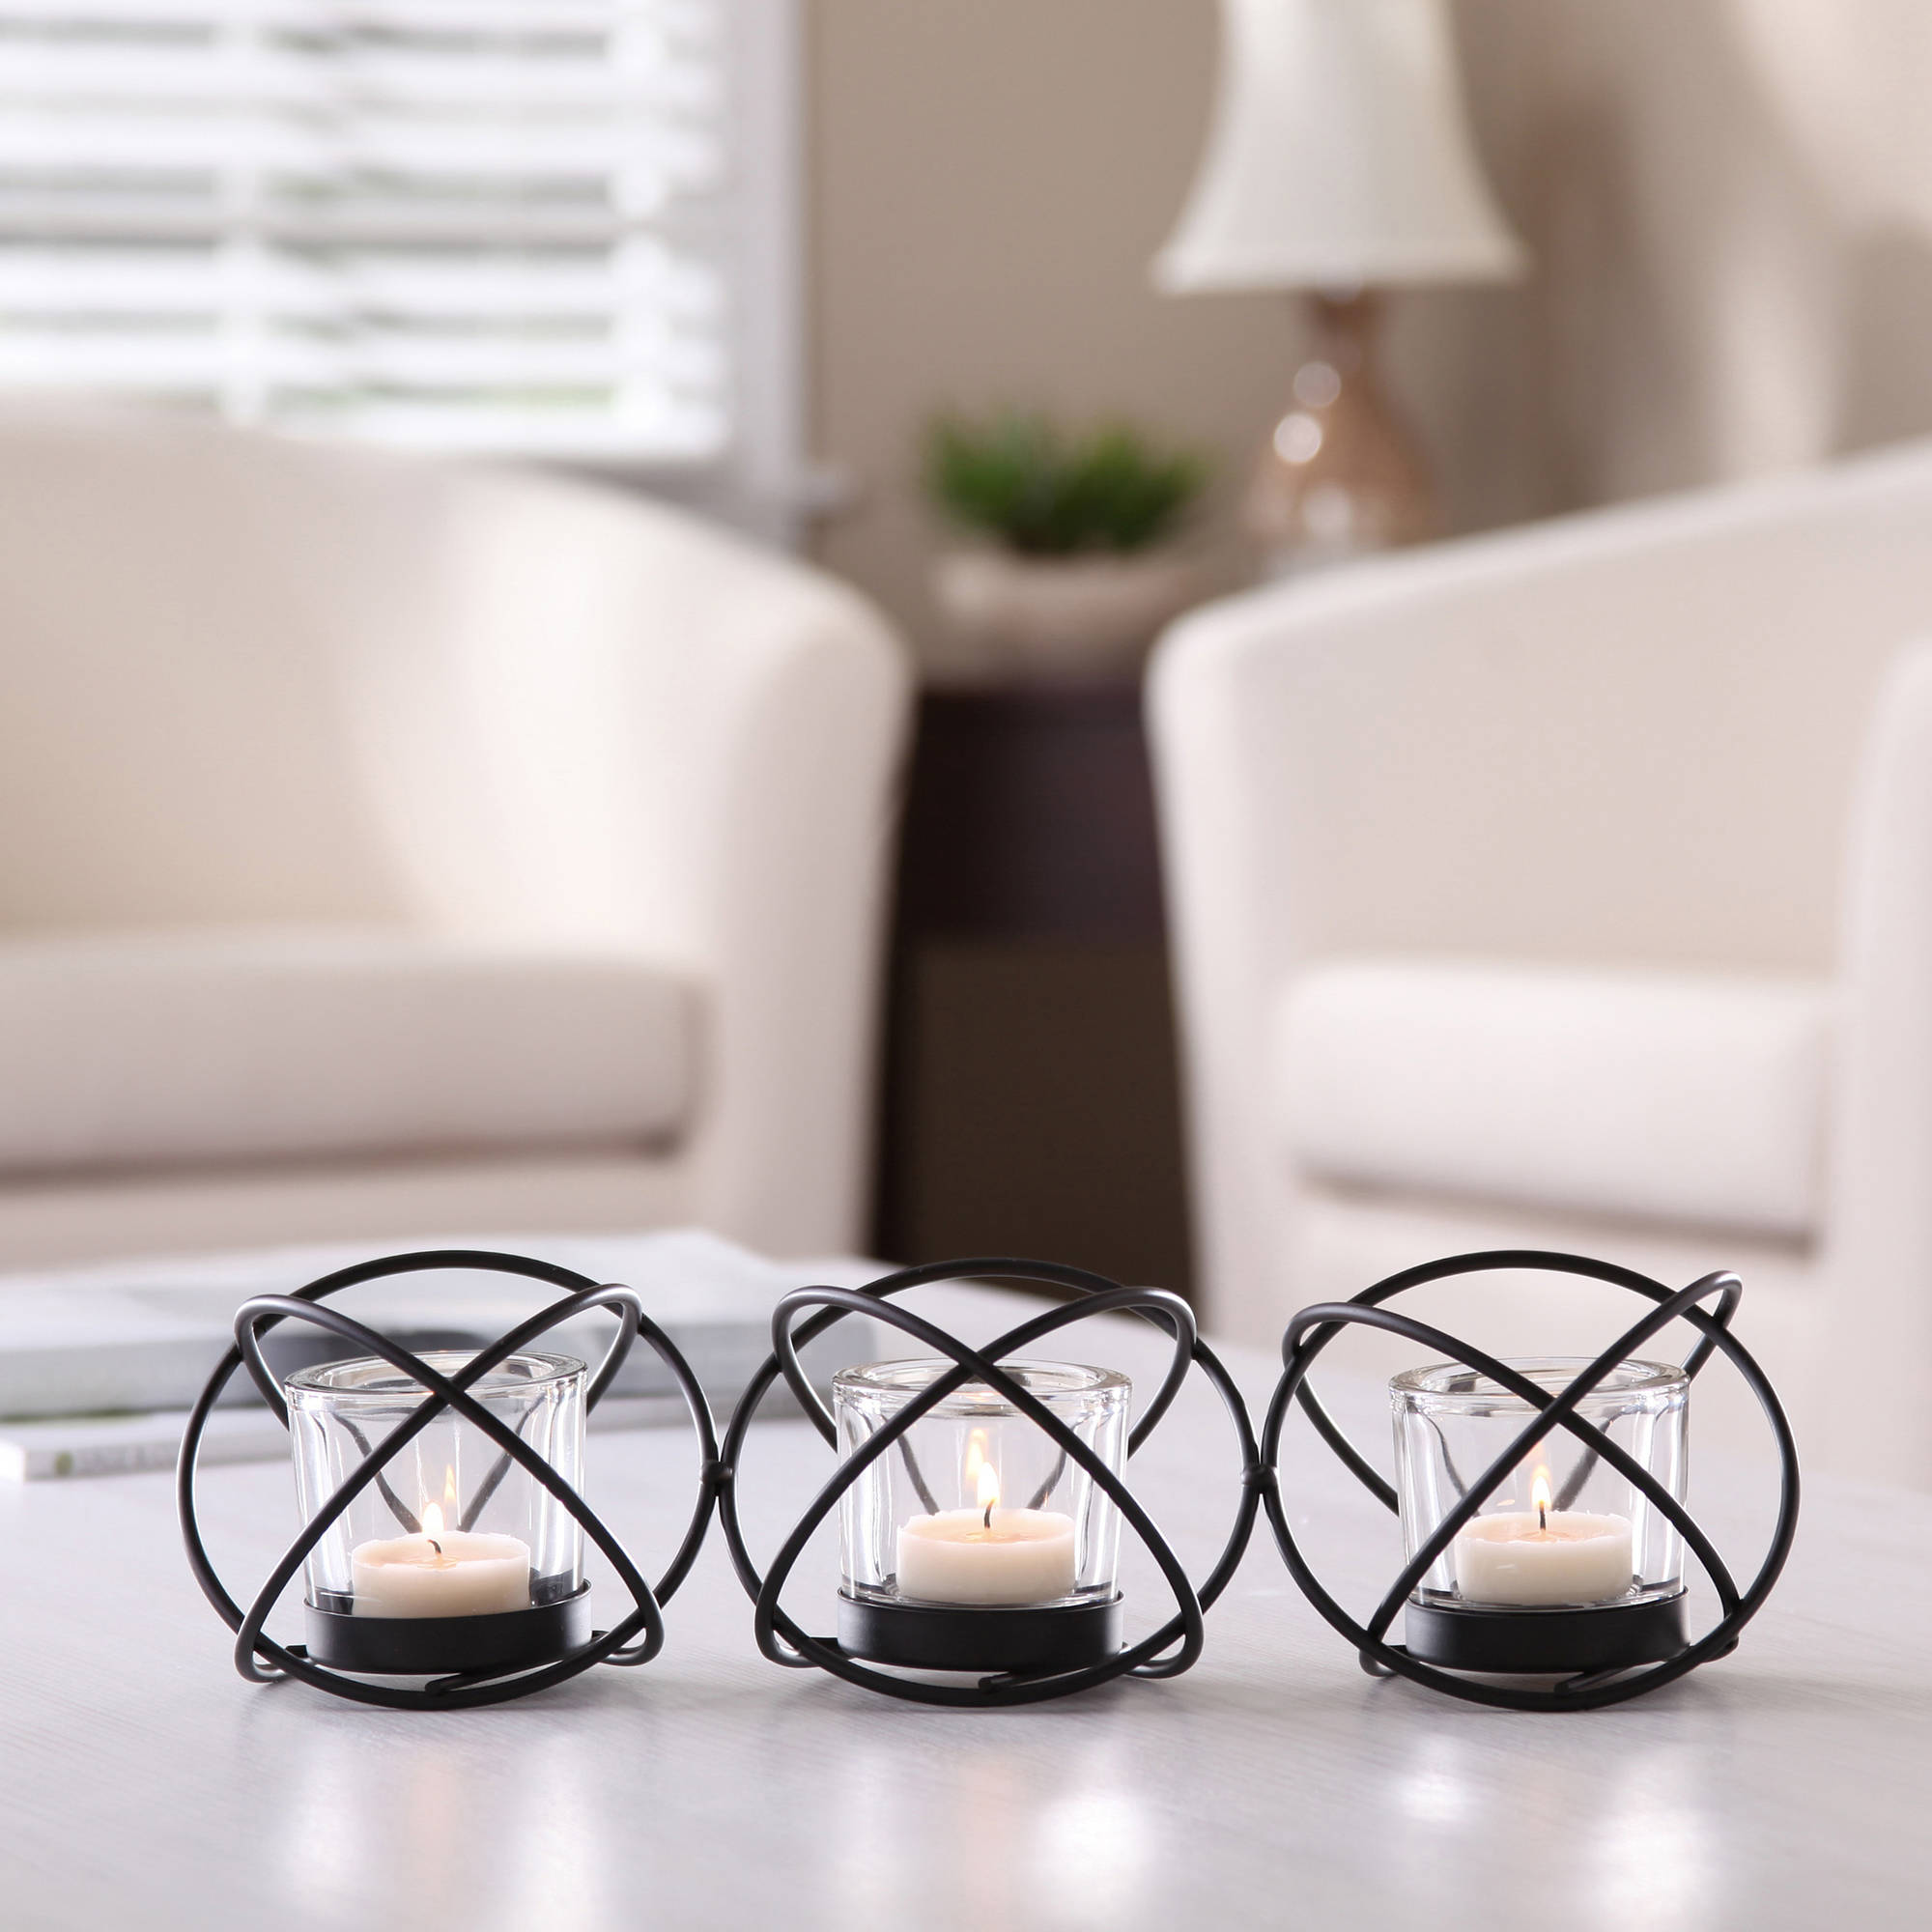 Better Homes and Gardens 3 Tealight Intertwined Rings Candle Holder, Black by